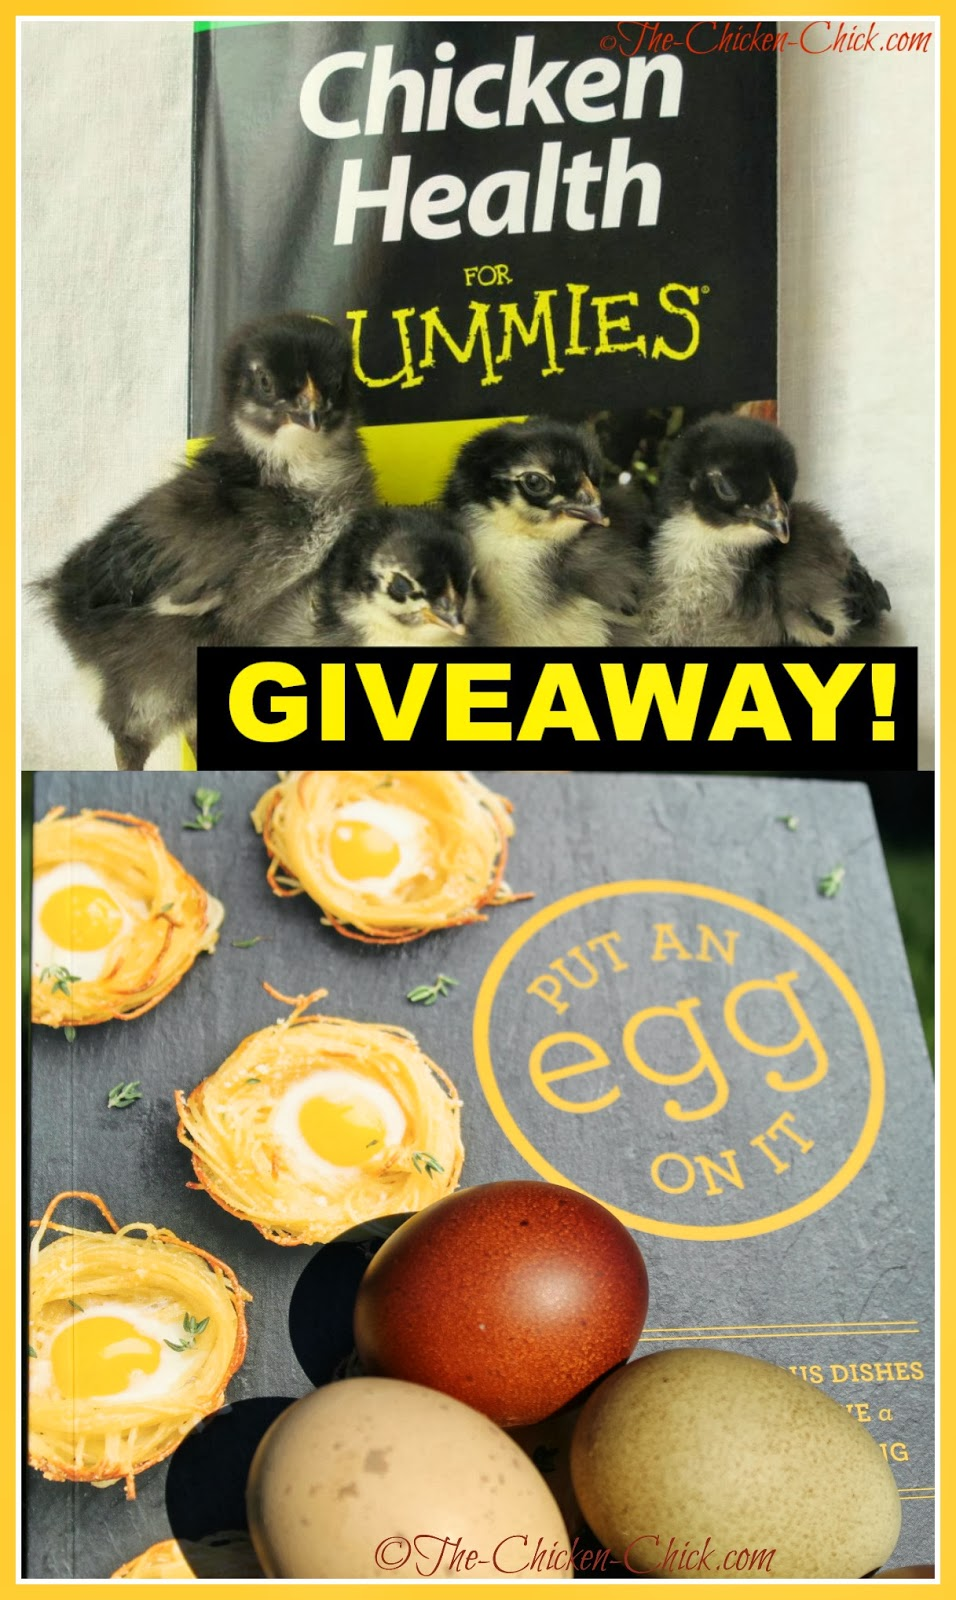 Chicken Health for Dummies and Put an Egg on It Book Giveaways